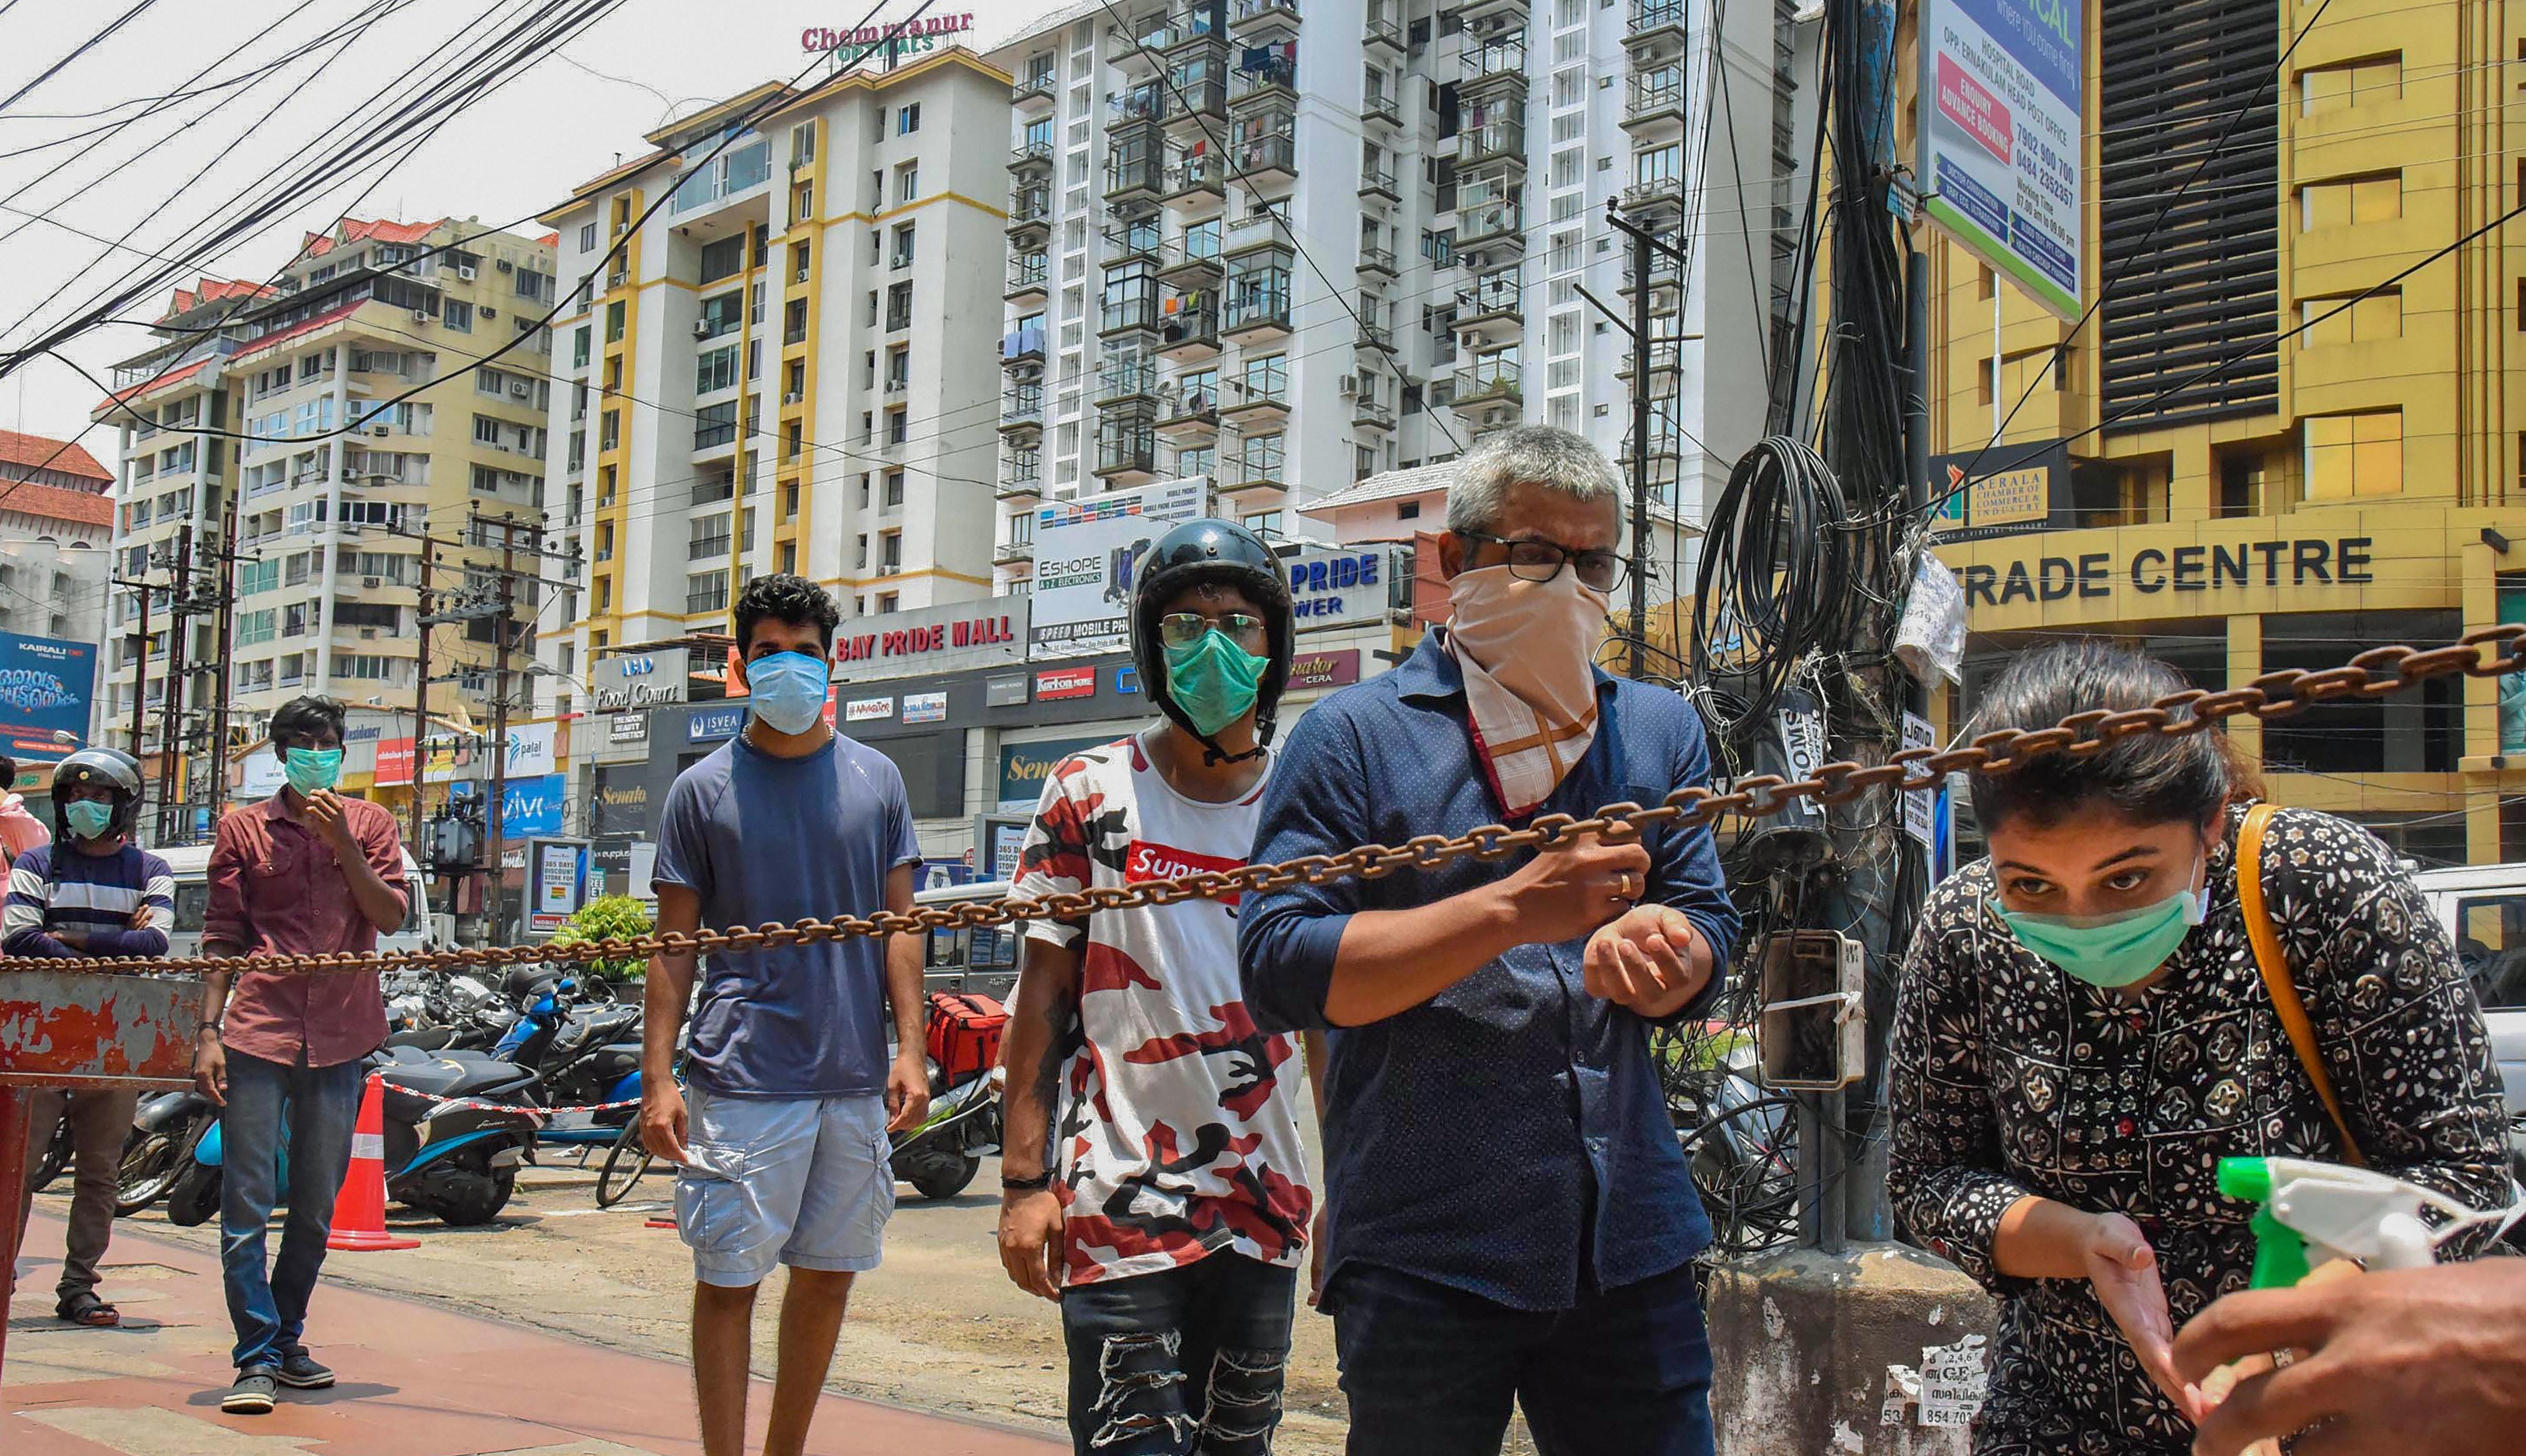 People stand in a queue at a mobile phone shopping complex to purchase and repair mobile phones during the nationwide lockdown in the wake of coronavirus pandemic, in Kochi, Sunday, April 19, 2020.